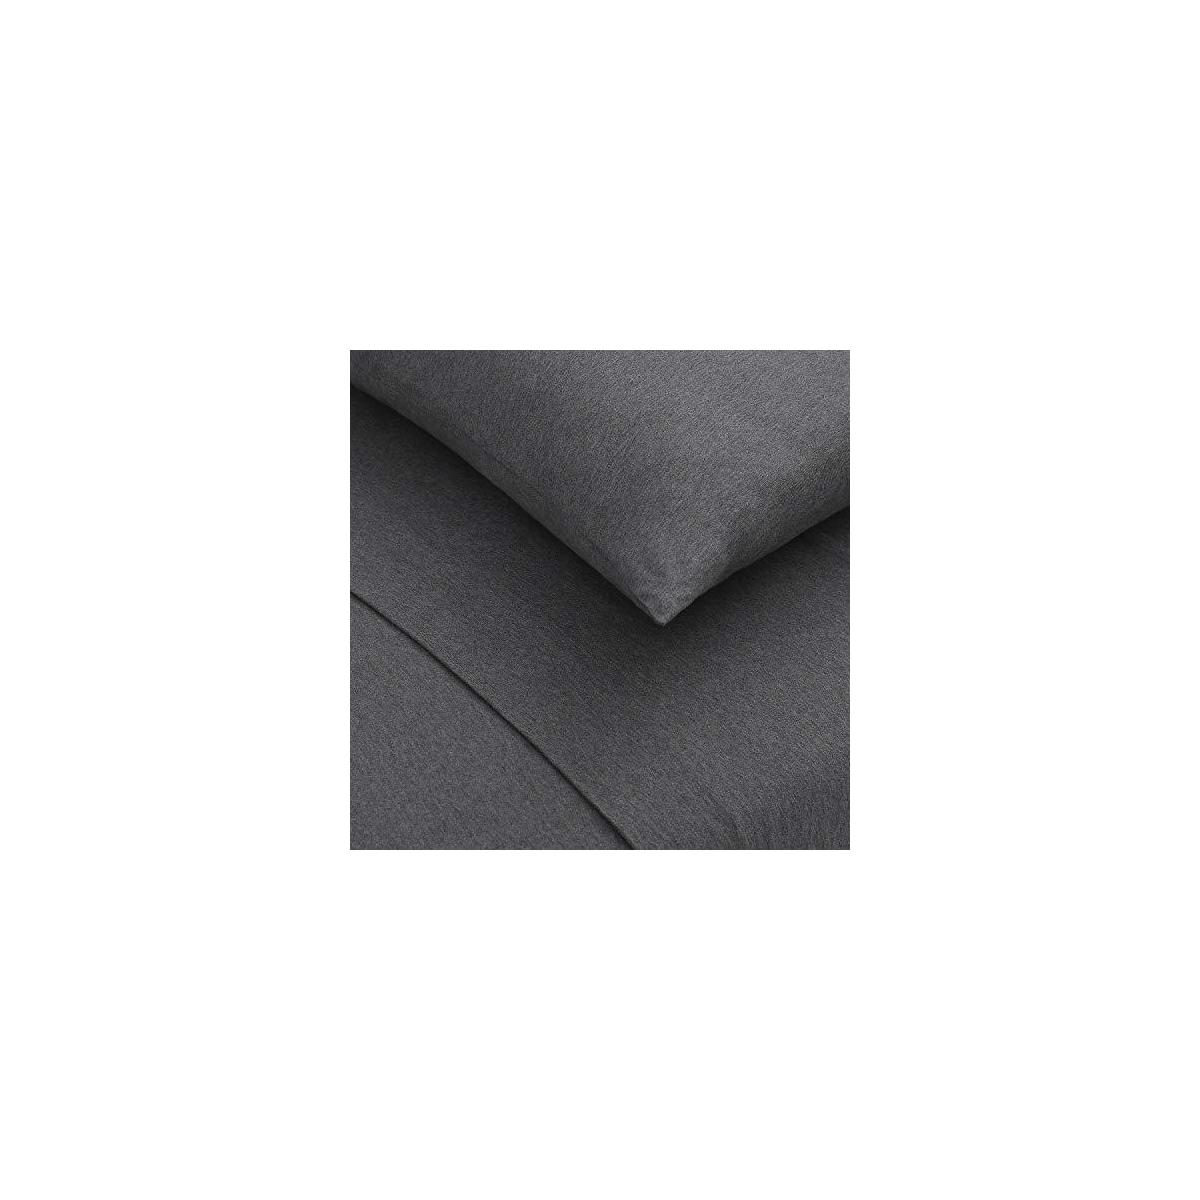 100% Cotton Jersey Knit Bed Sheet Set (Queen, Dark Gray Heather) - Should not apply any coupon